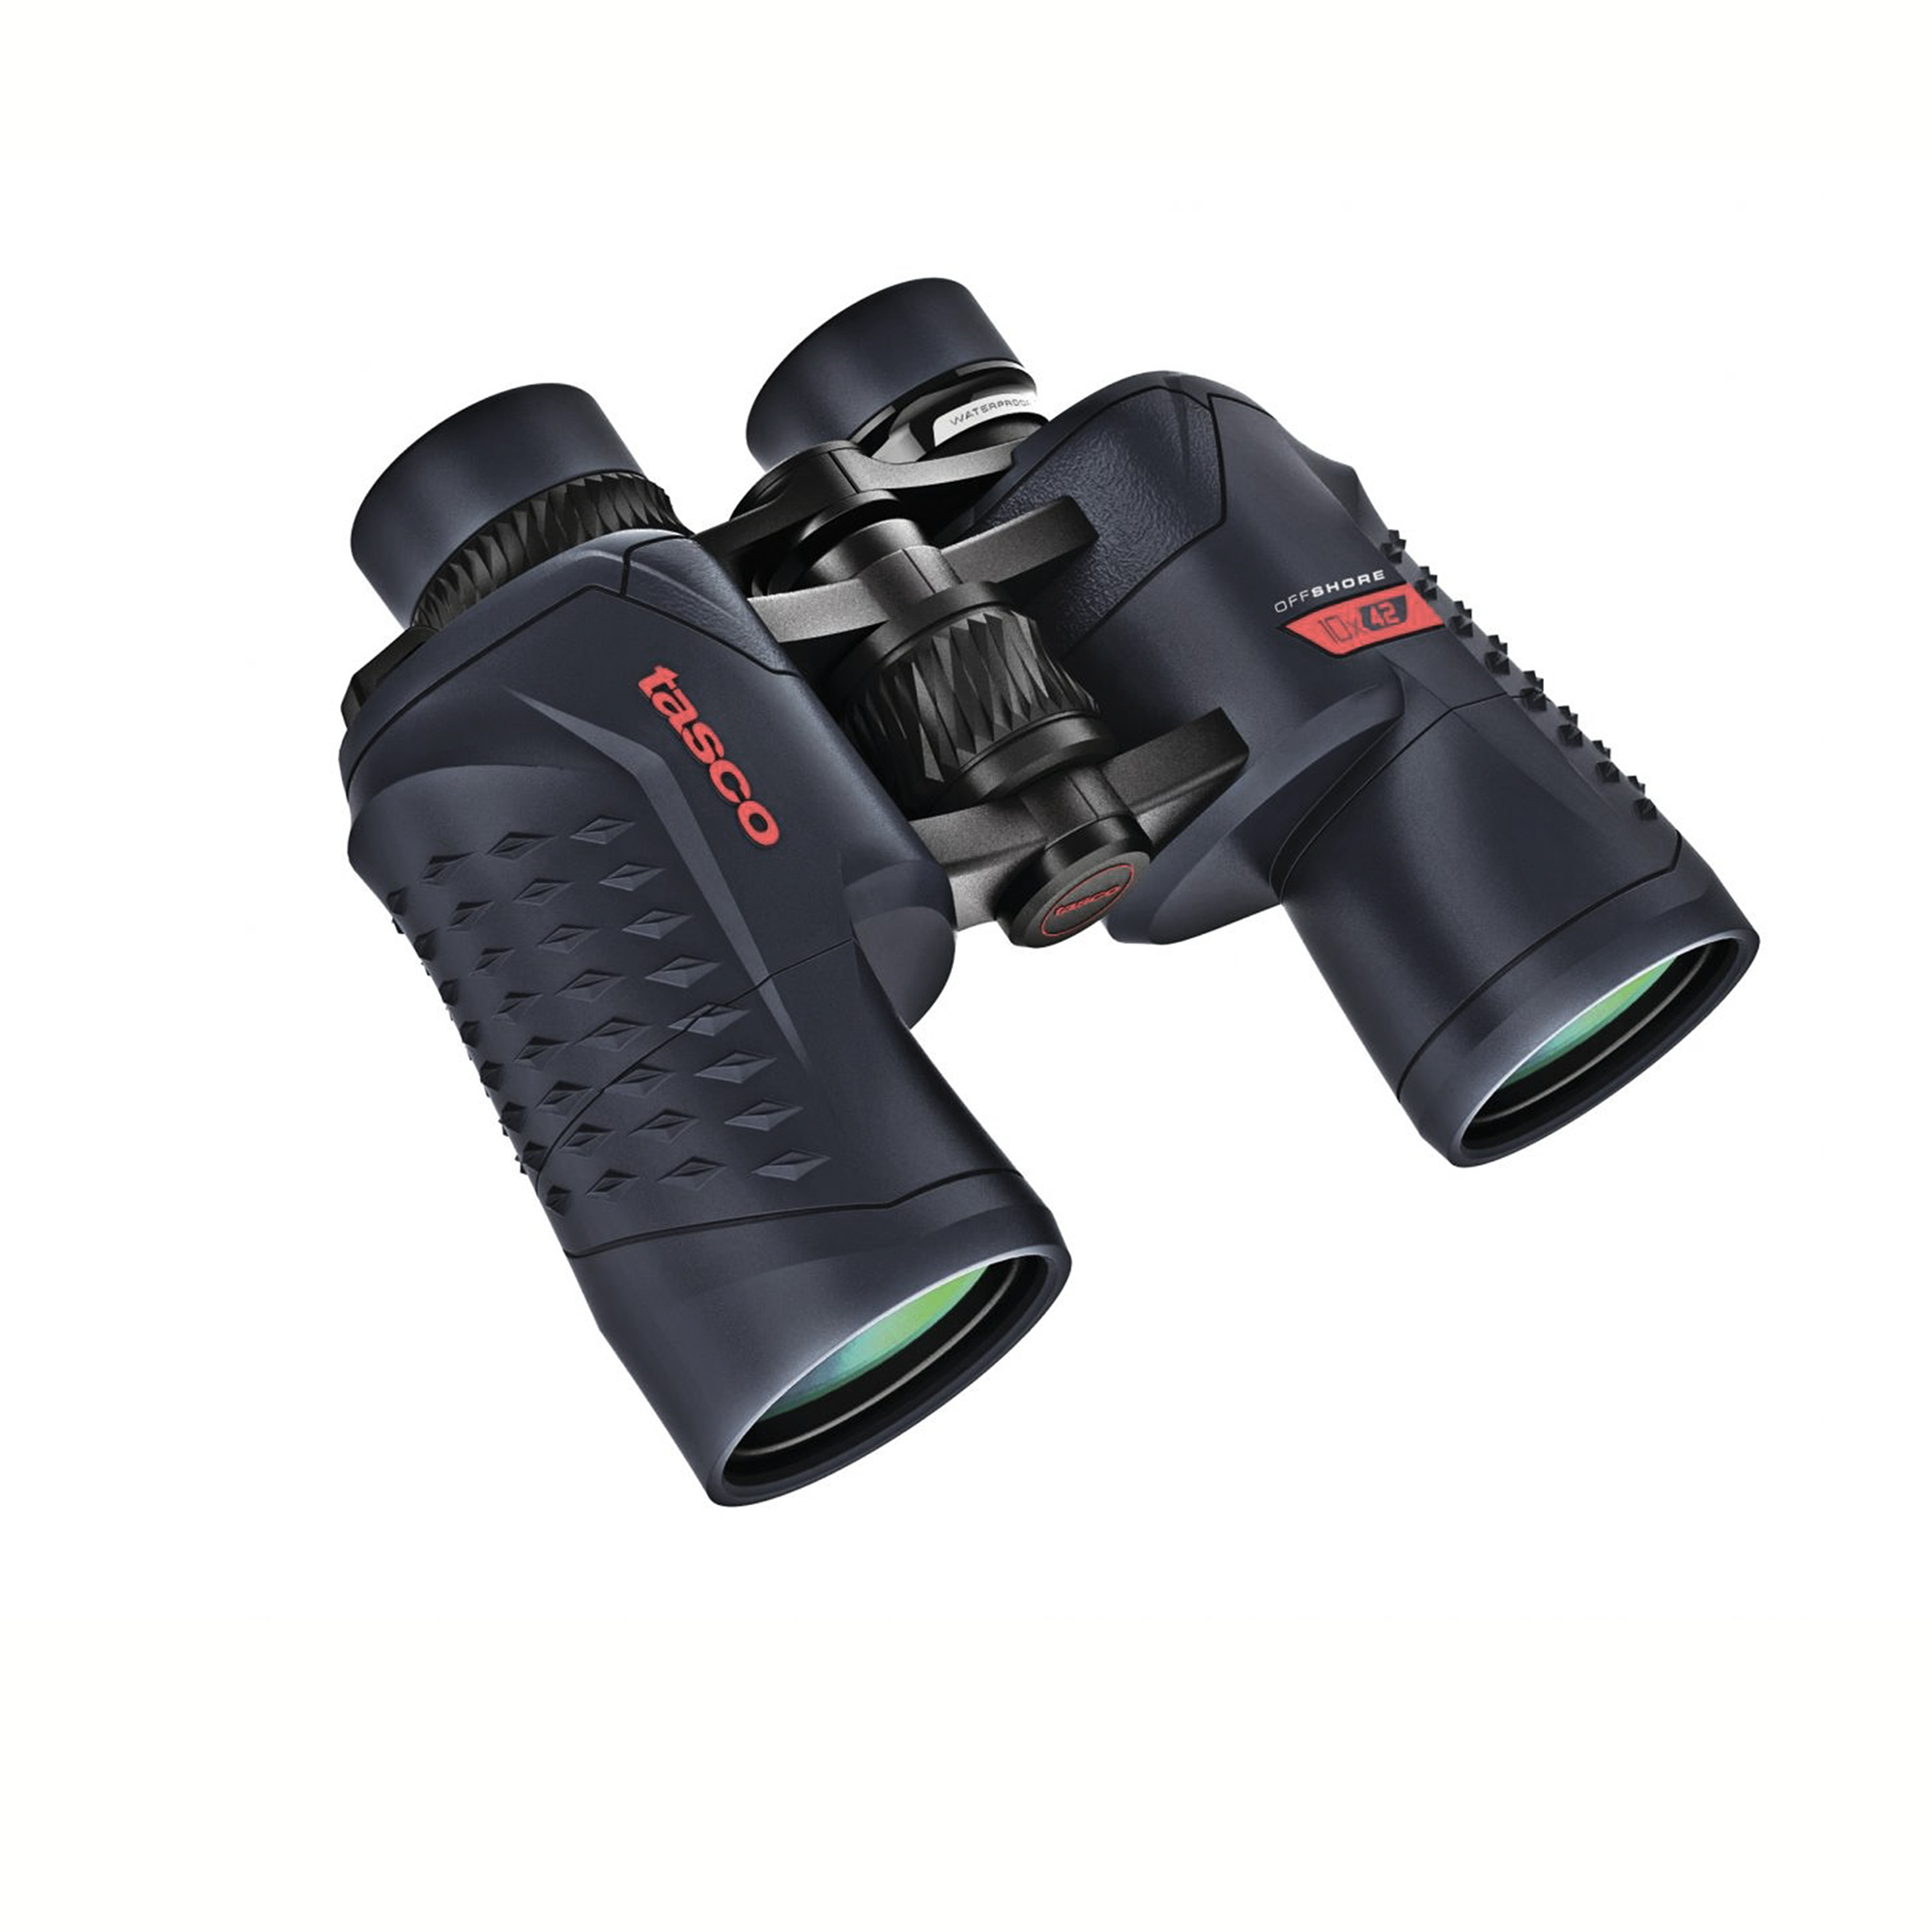 TASCO 10×42 Tasco Off Shore 200142 Binocular BaK-4 Prism, Waterproof, Blue by Tasco